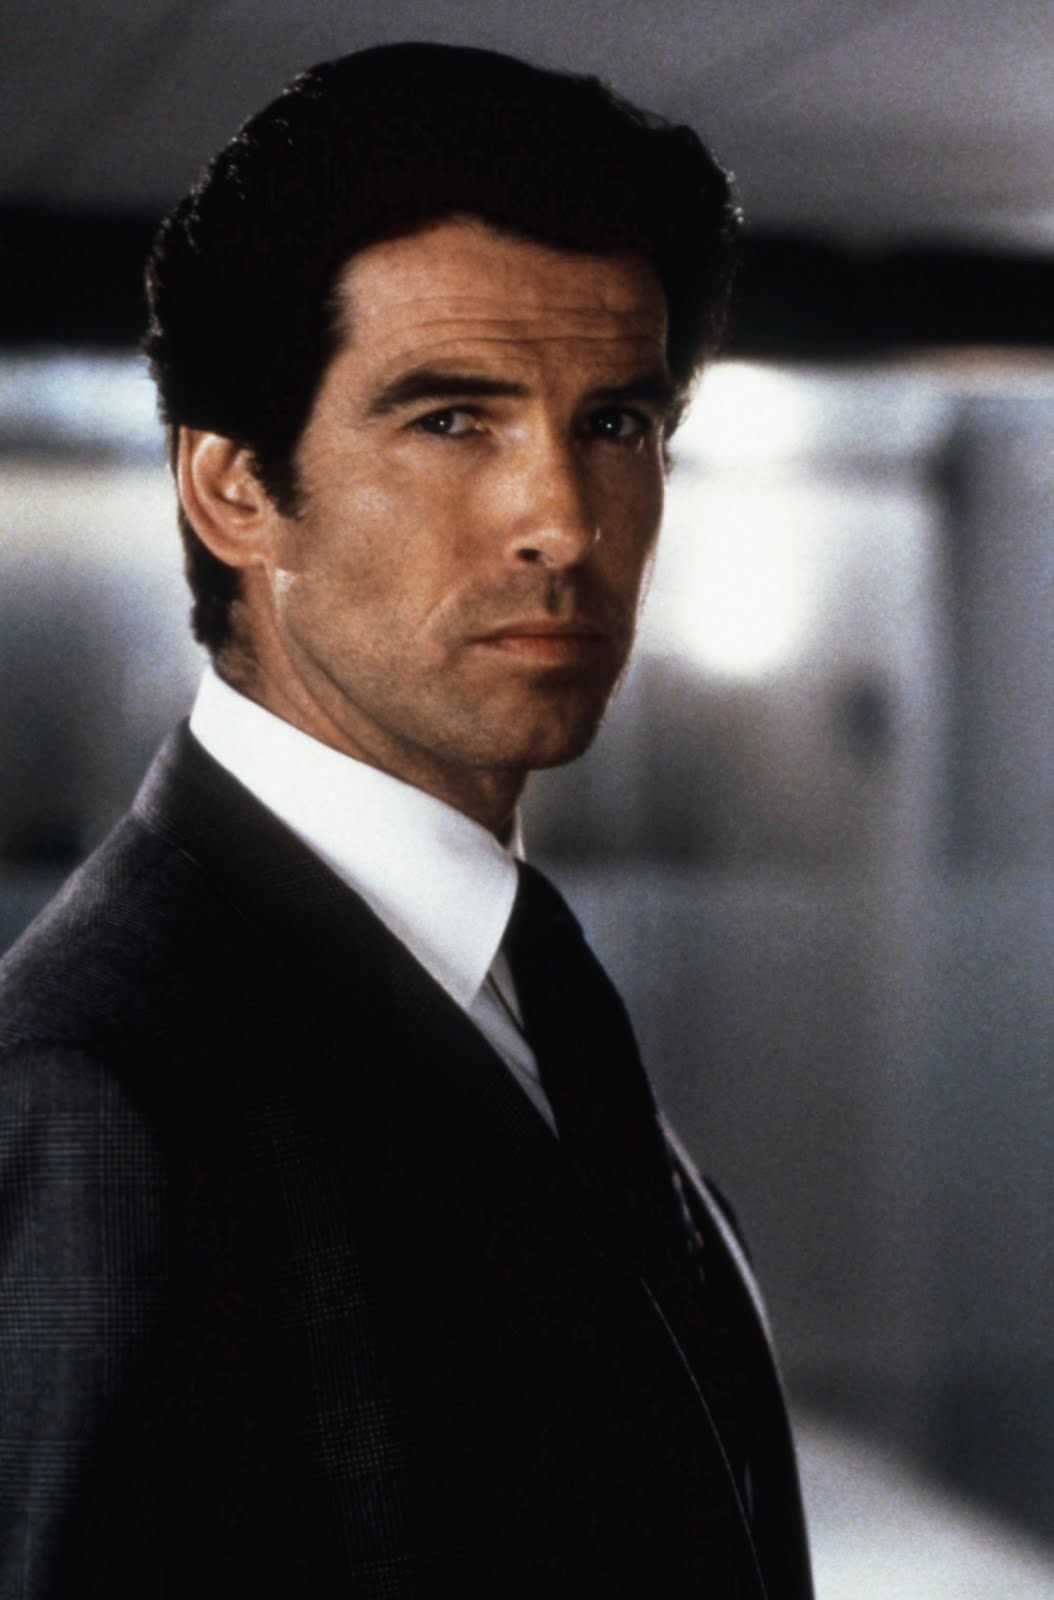 pierce brosnan filmleripierce brosnan wife, pierce brosnan films, pierce brosnan movies, pierce brosnan james bond, pierce brosnan 2016, pierce brosnan height, pierce brosnan son, pierce brosnan salma hayek, pierce brosnan filmi, pierce brosnan and keely shaye smith, pierce brosnan 2017, pierce brosnan filmleri, pierce brosnan imdb, pierce brosnan movies list, pierce brosnan wiki, pierce brosnan die another day, pierce brosnan фильмы, pierce brosnan james corden, pierce brosnan filme, pierce brosnan twitter